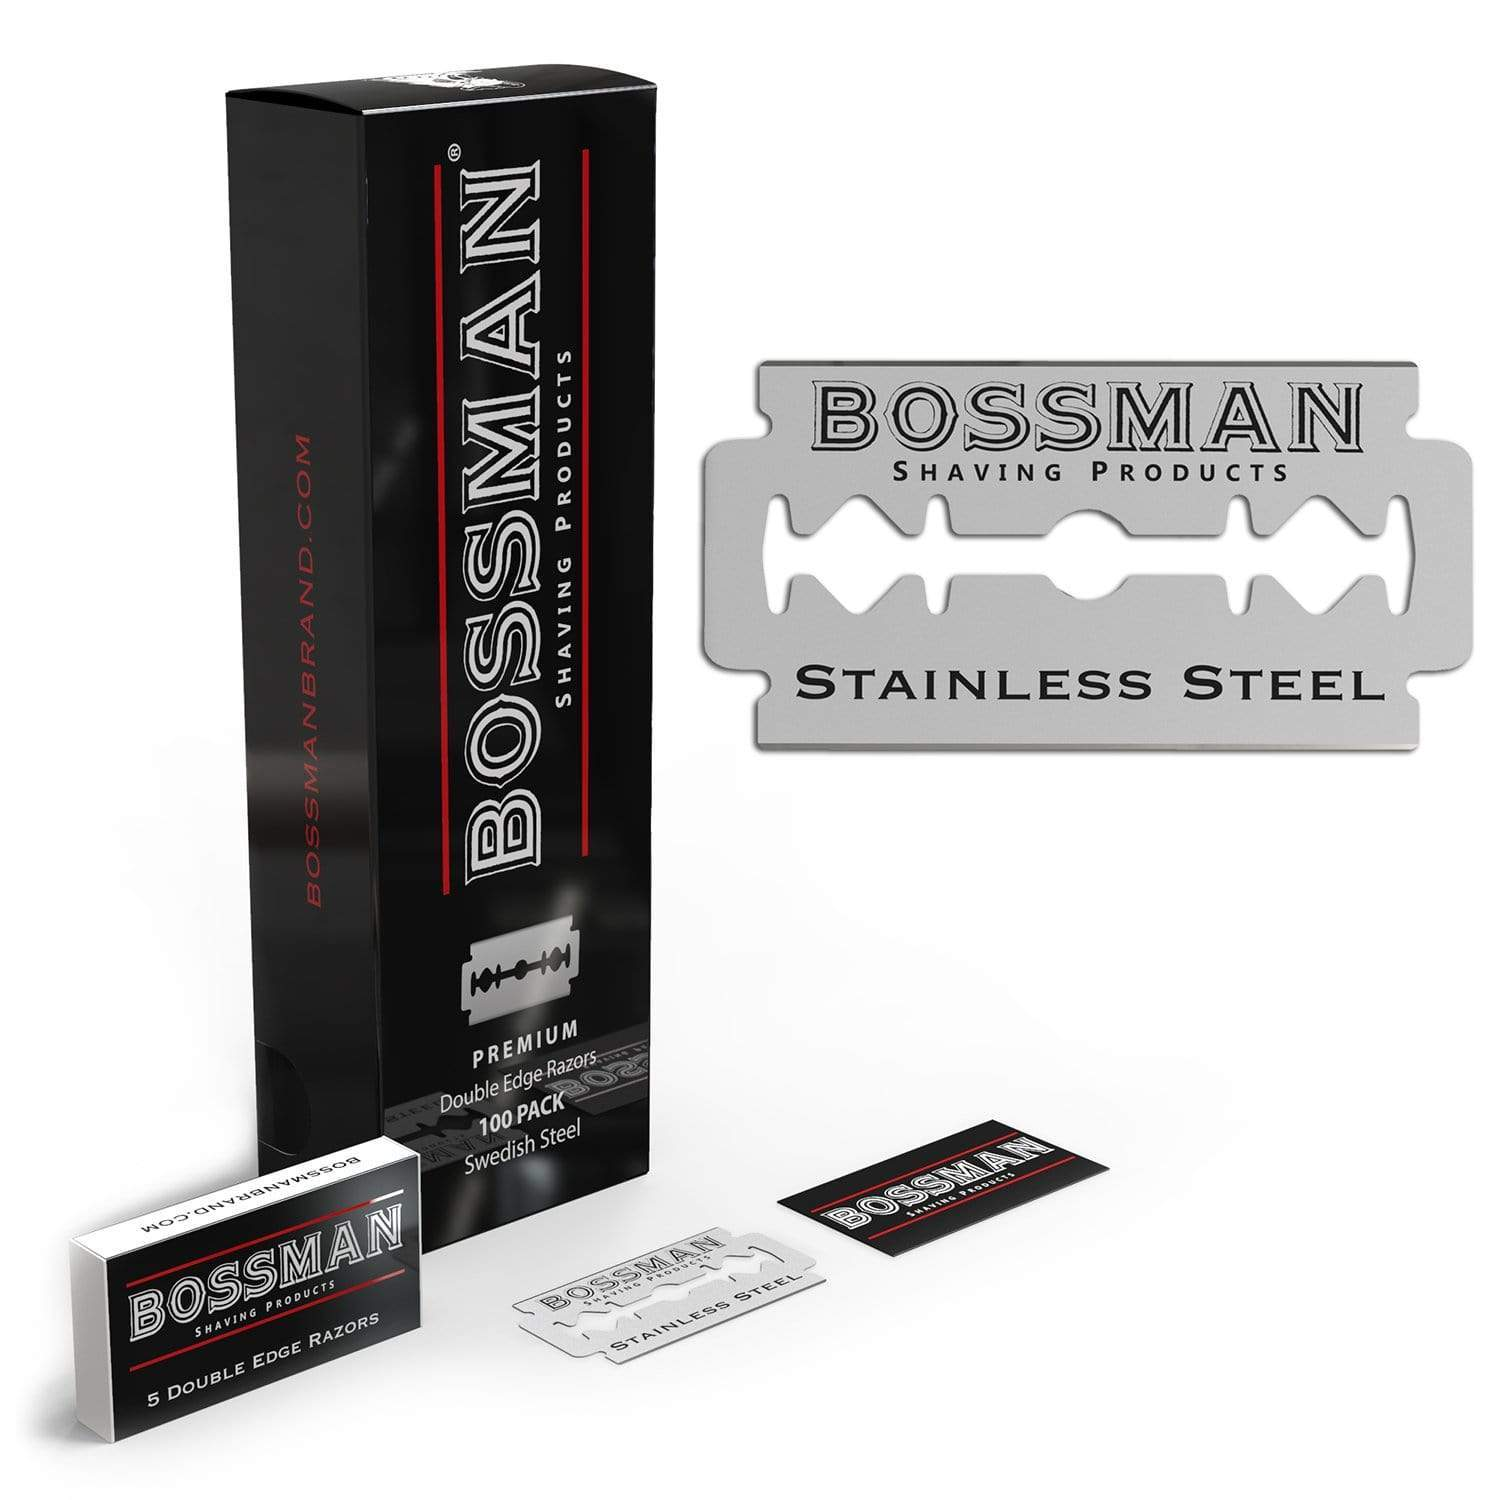 Bossman Double Edge Replacement Blades - 100 Pack